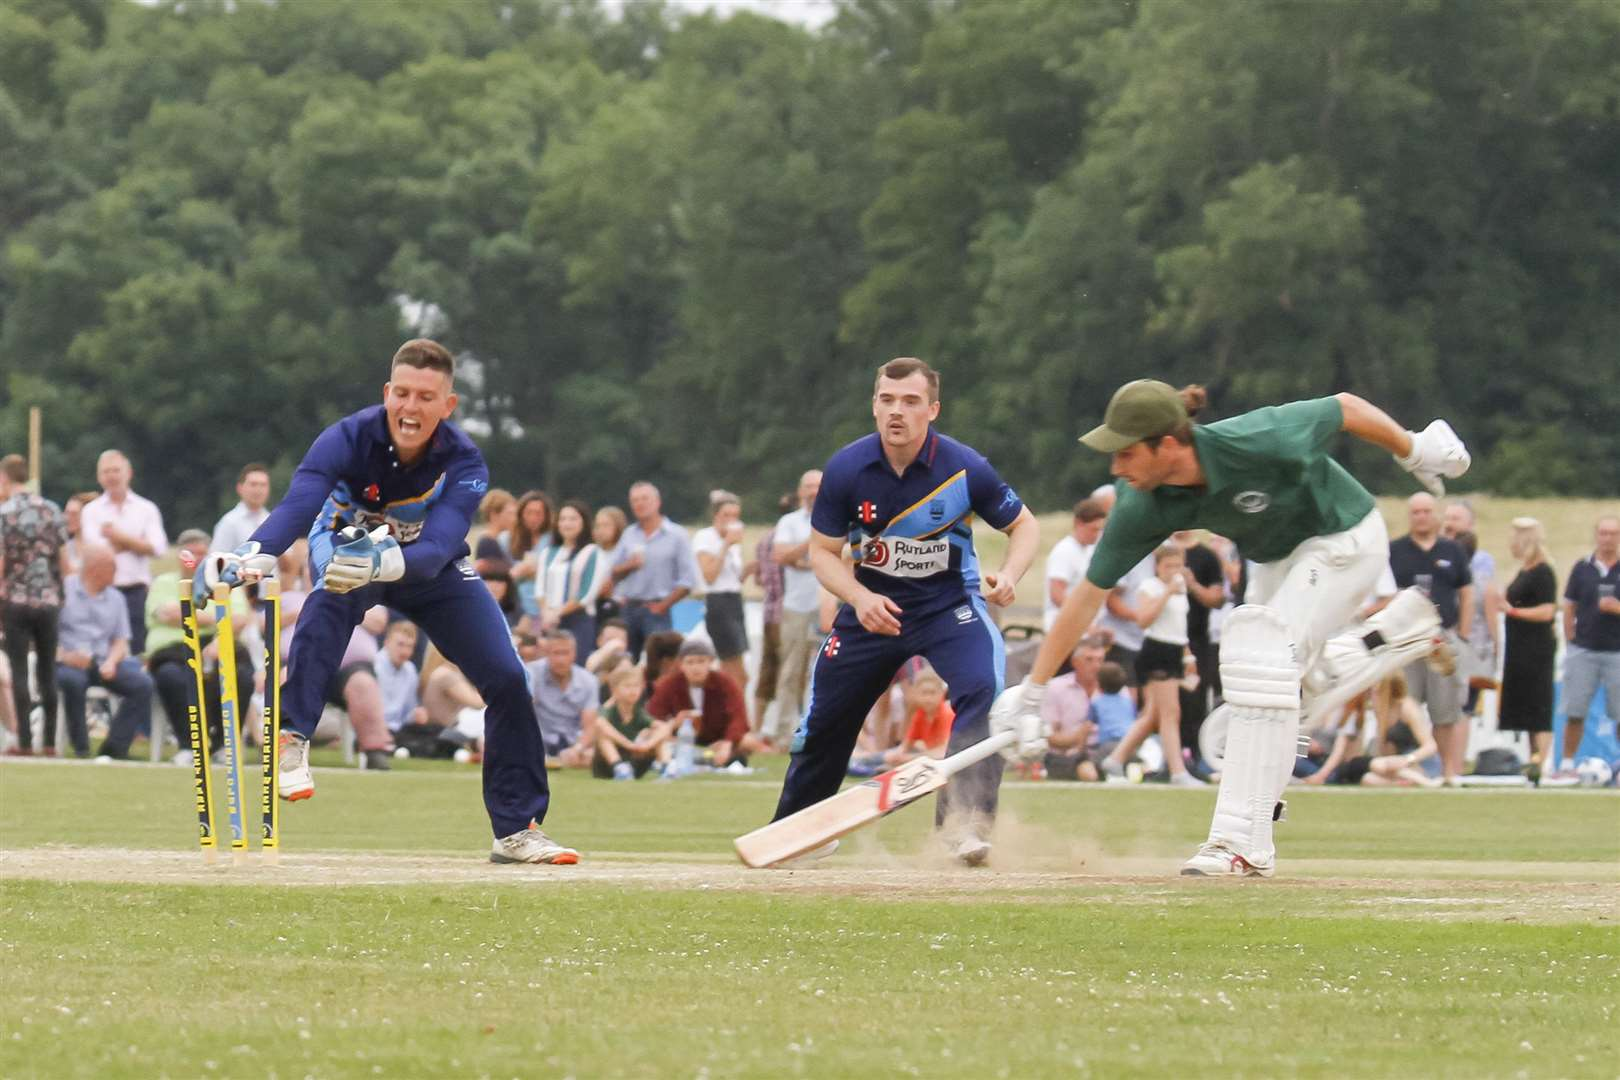 Burghley Park Sixes. Photo: Pip Warters (2805451)